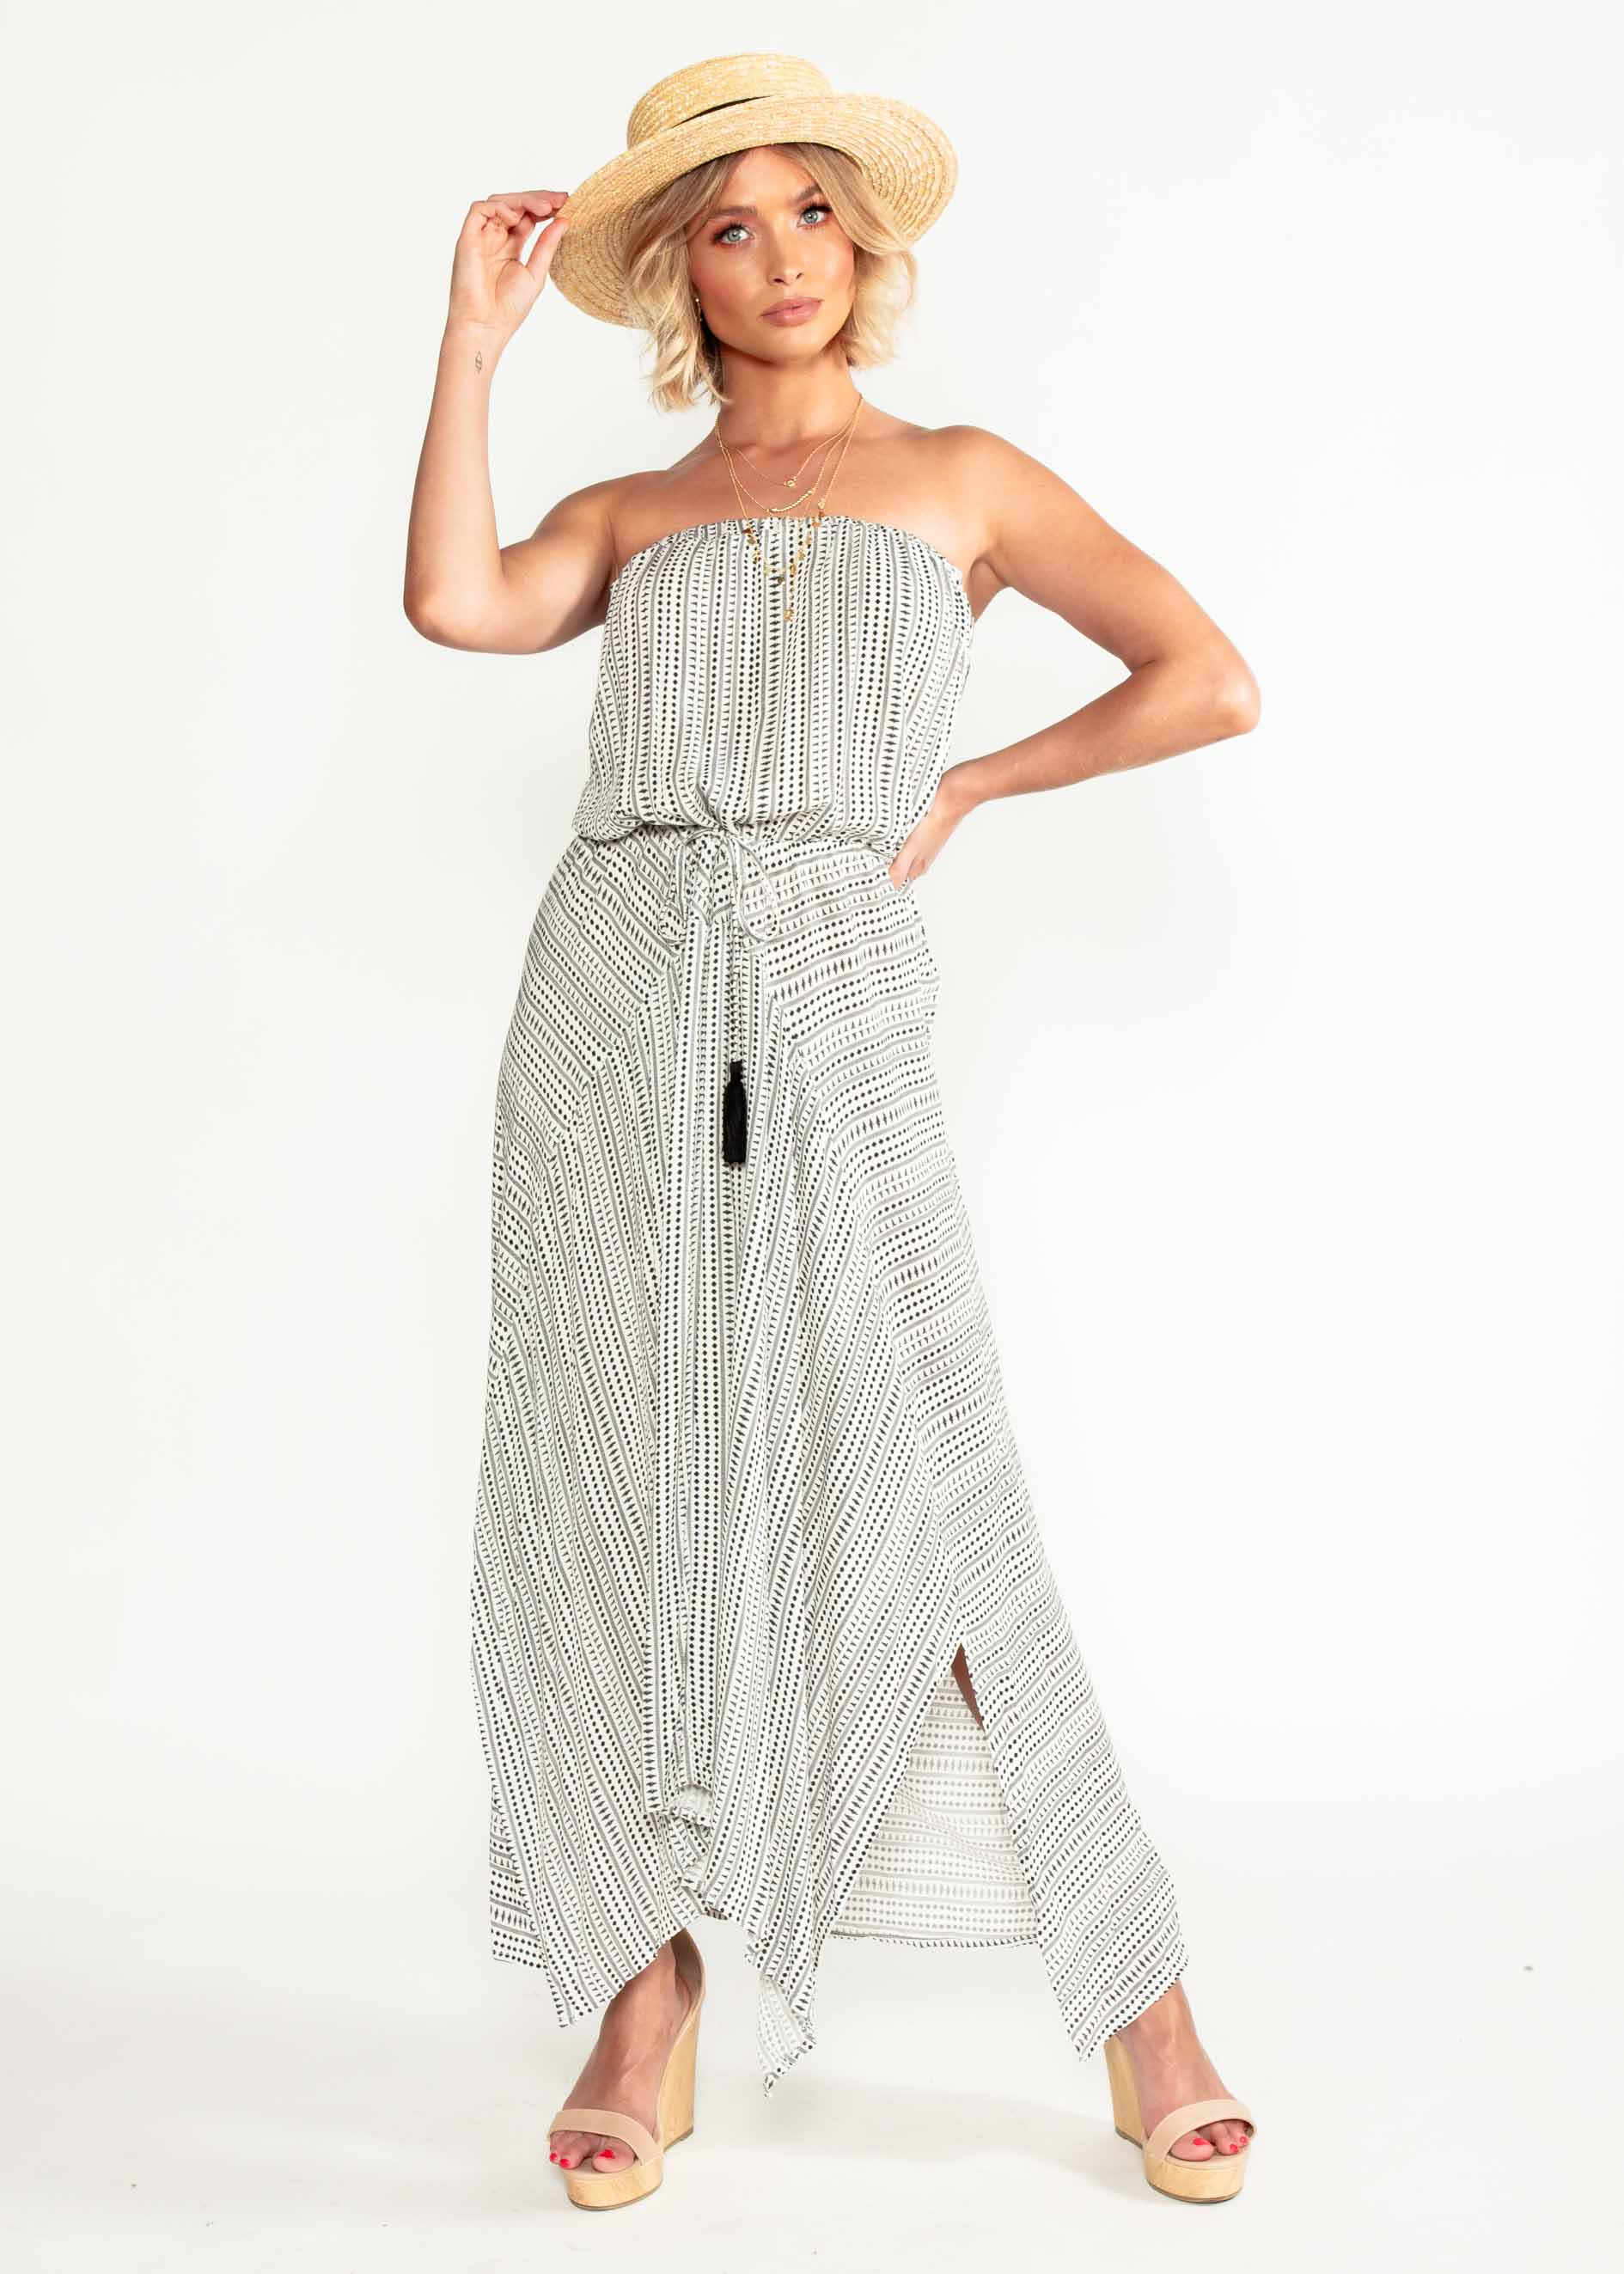 Delray Strapless Maxi Dress - White Black – Gingham and Heels 22a4f2682